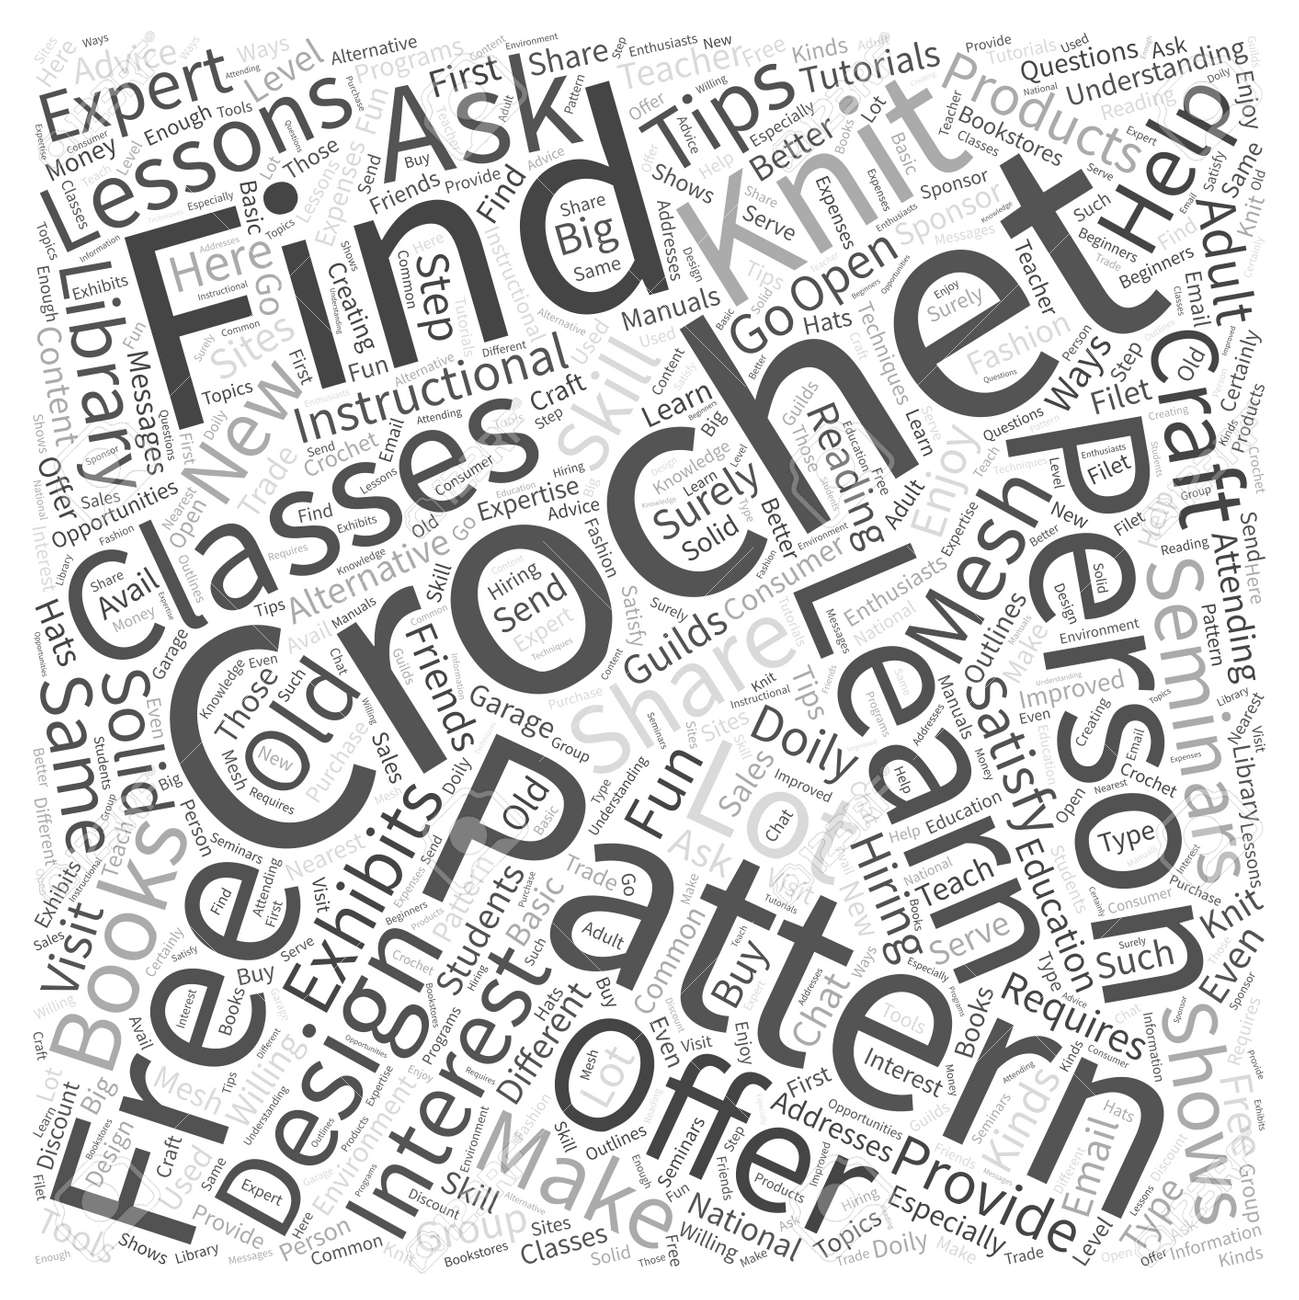 Free Crochet Doily Patterns Word Cloud Concept Royalty Free Cliparts ...